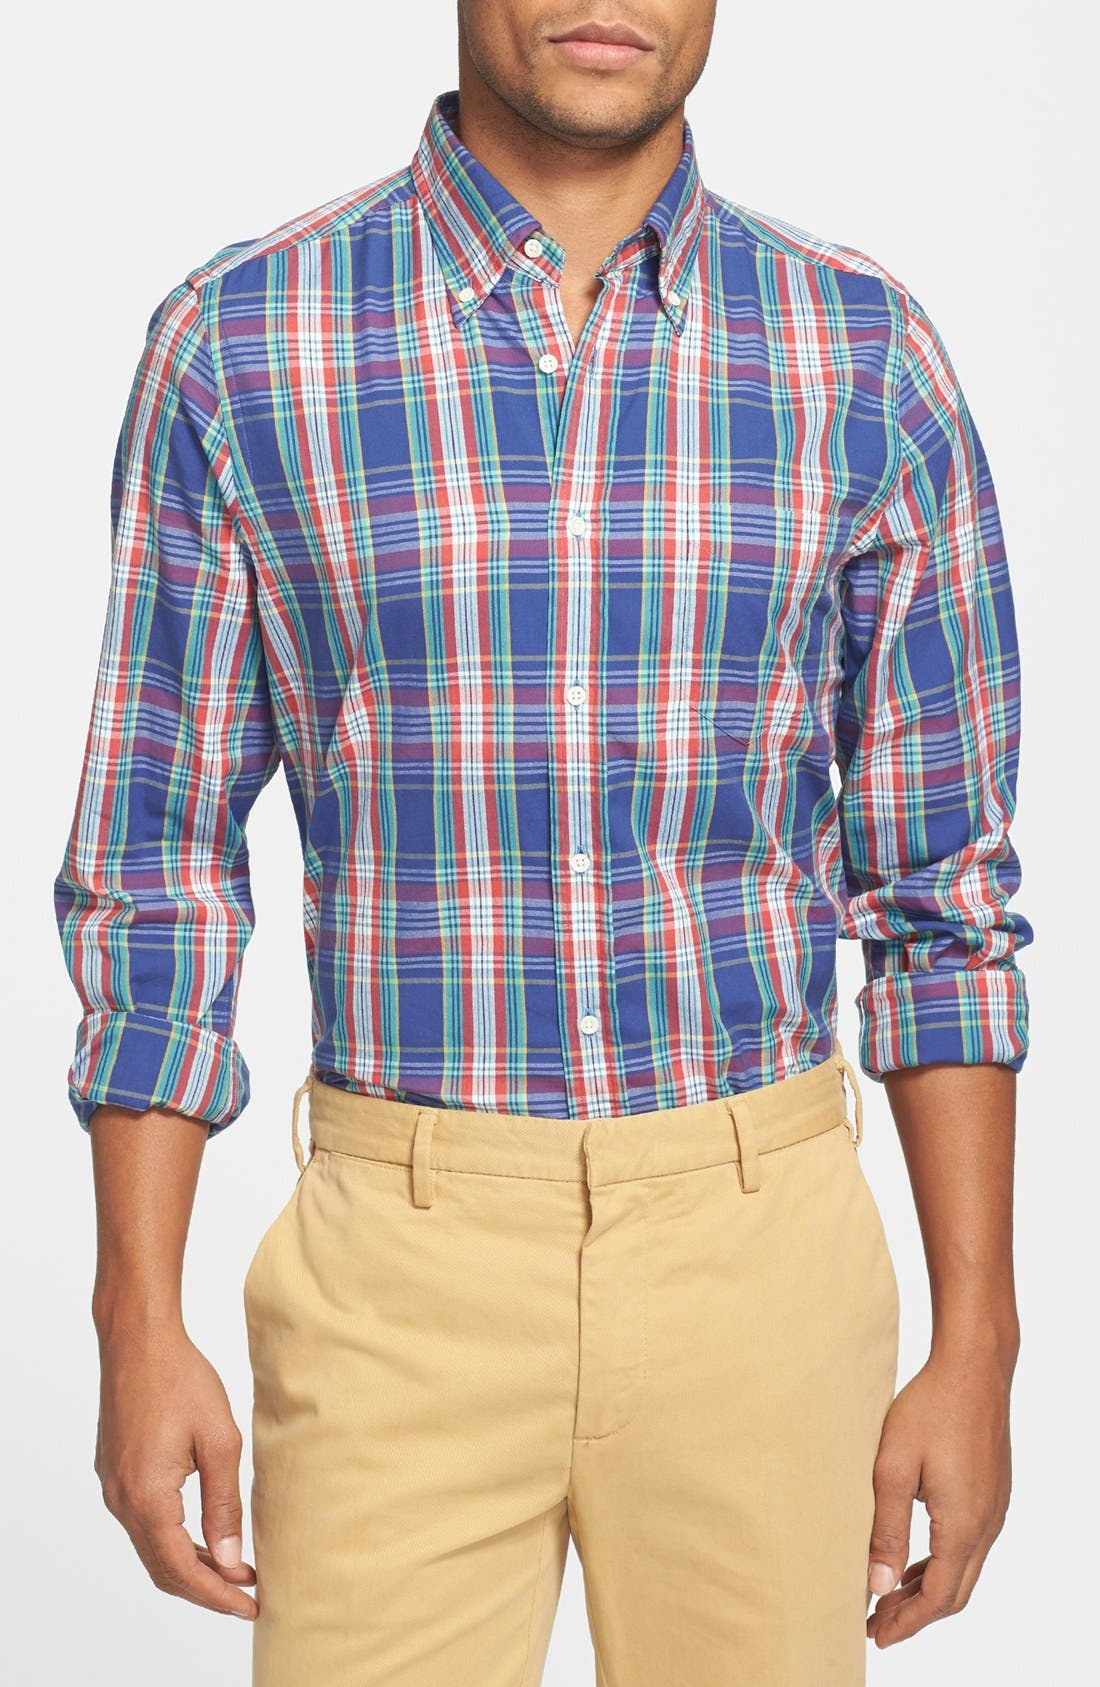 Alternate Image 1 Selected - Gant Rugger 'Dreamy' Plaid Oxford Shirt